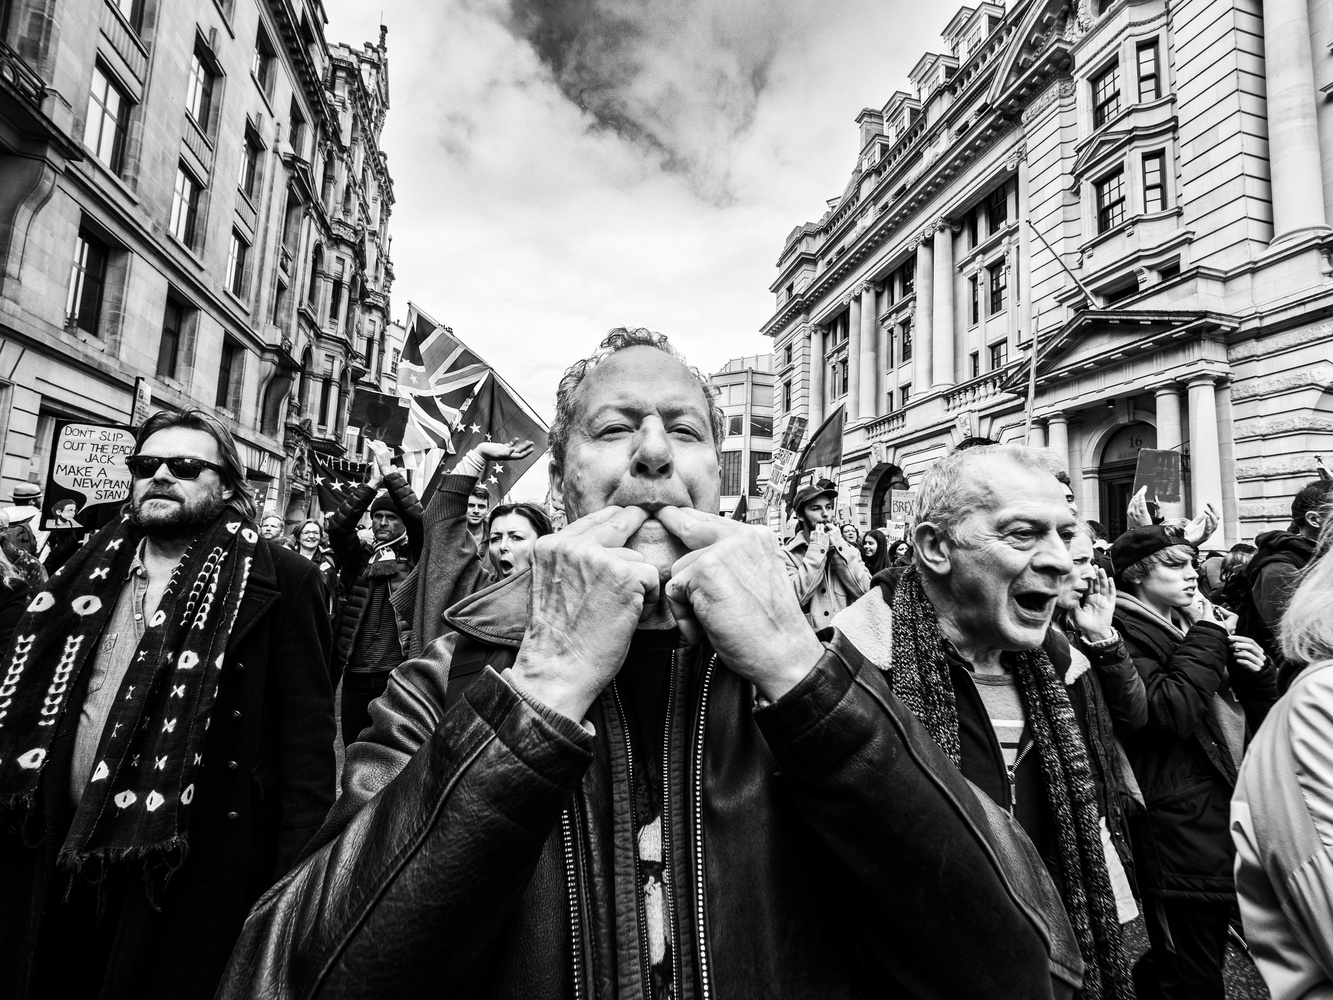 In the crowd of London by tomas doe